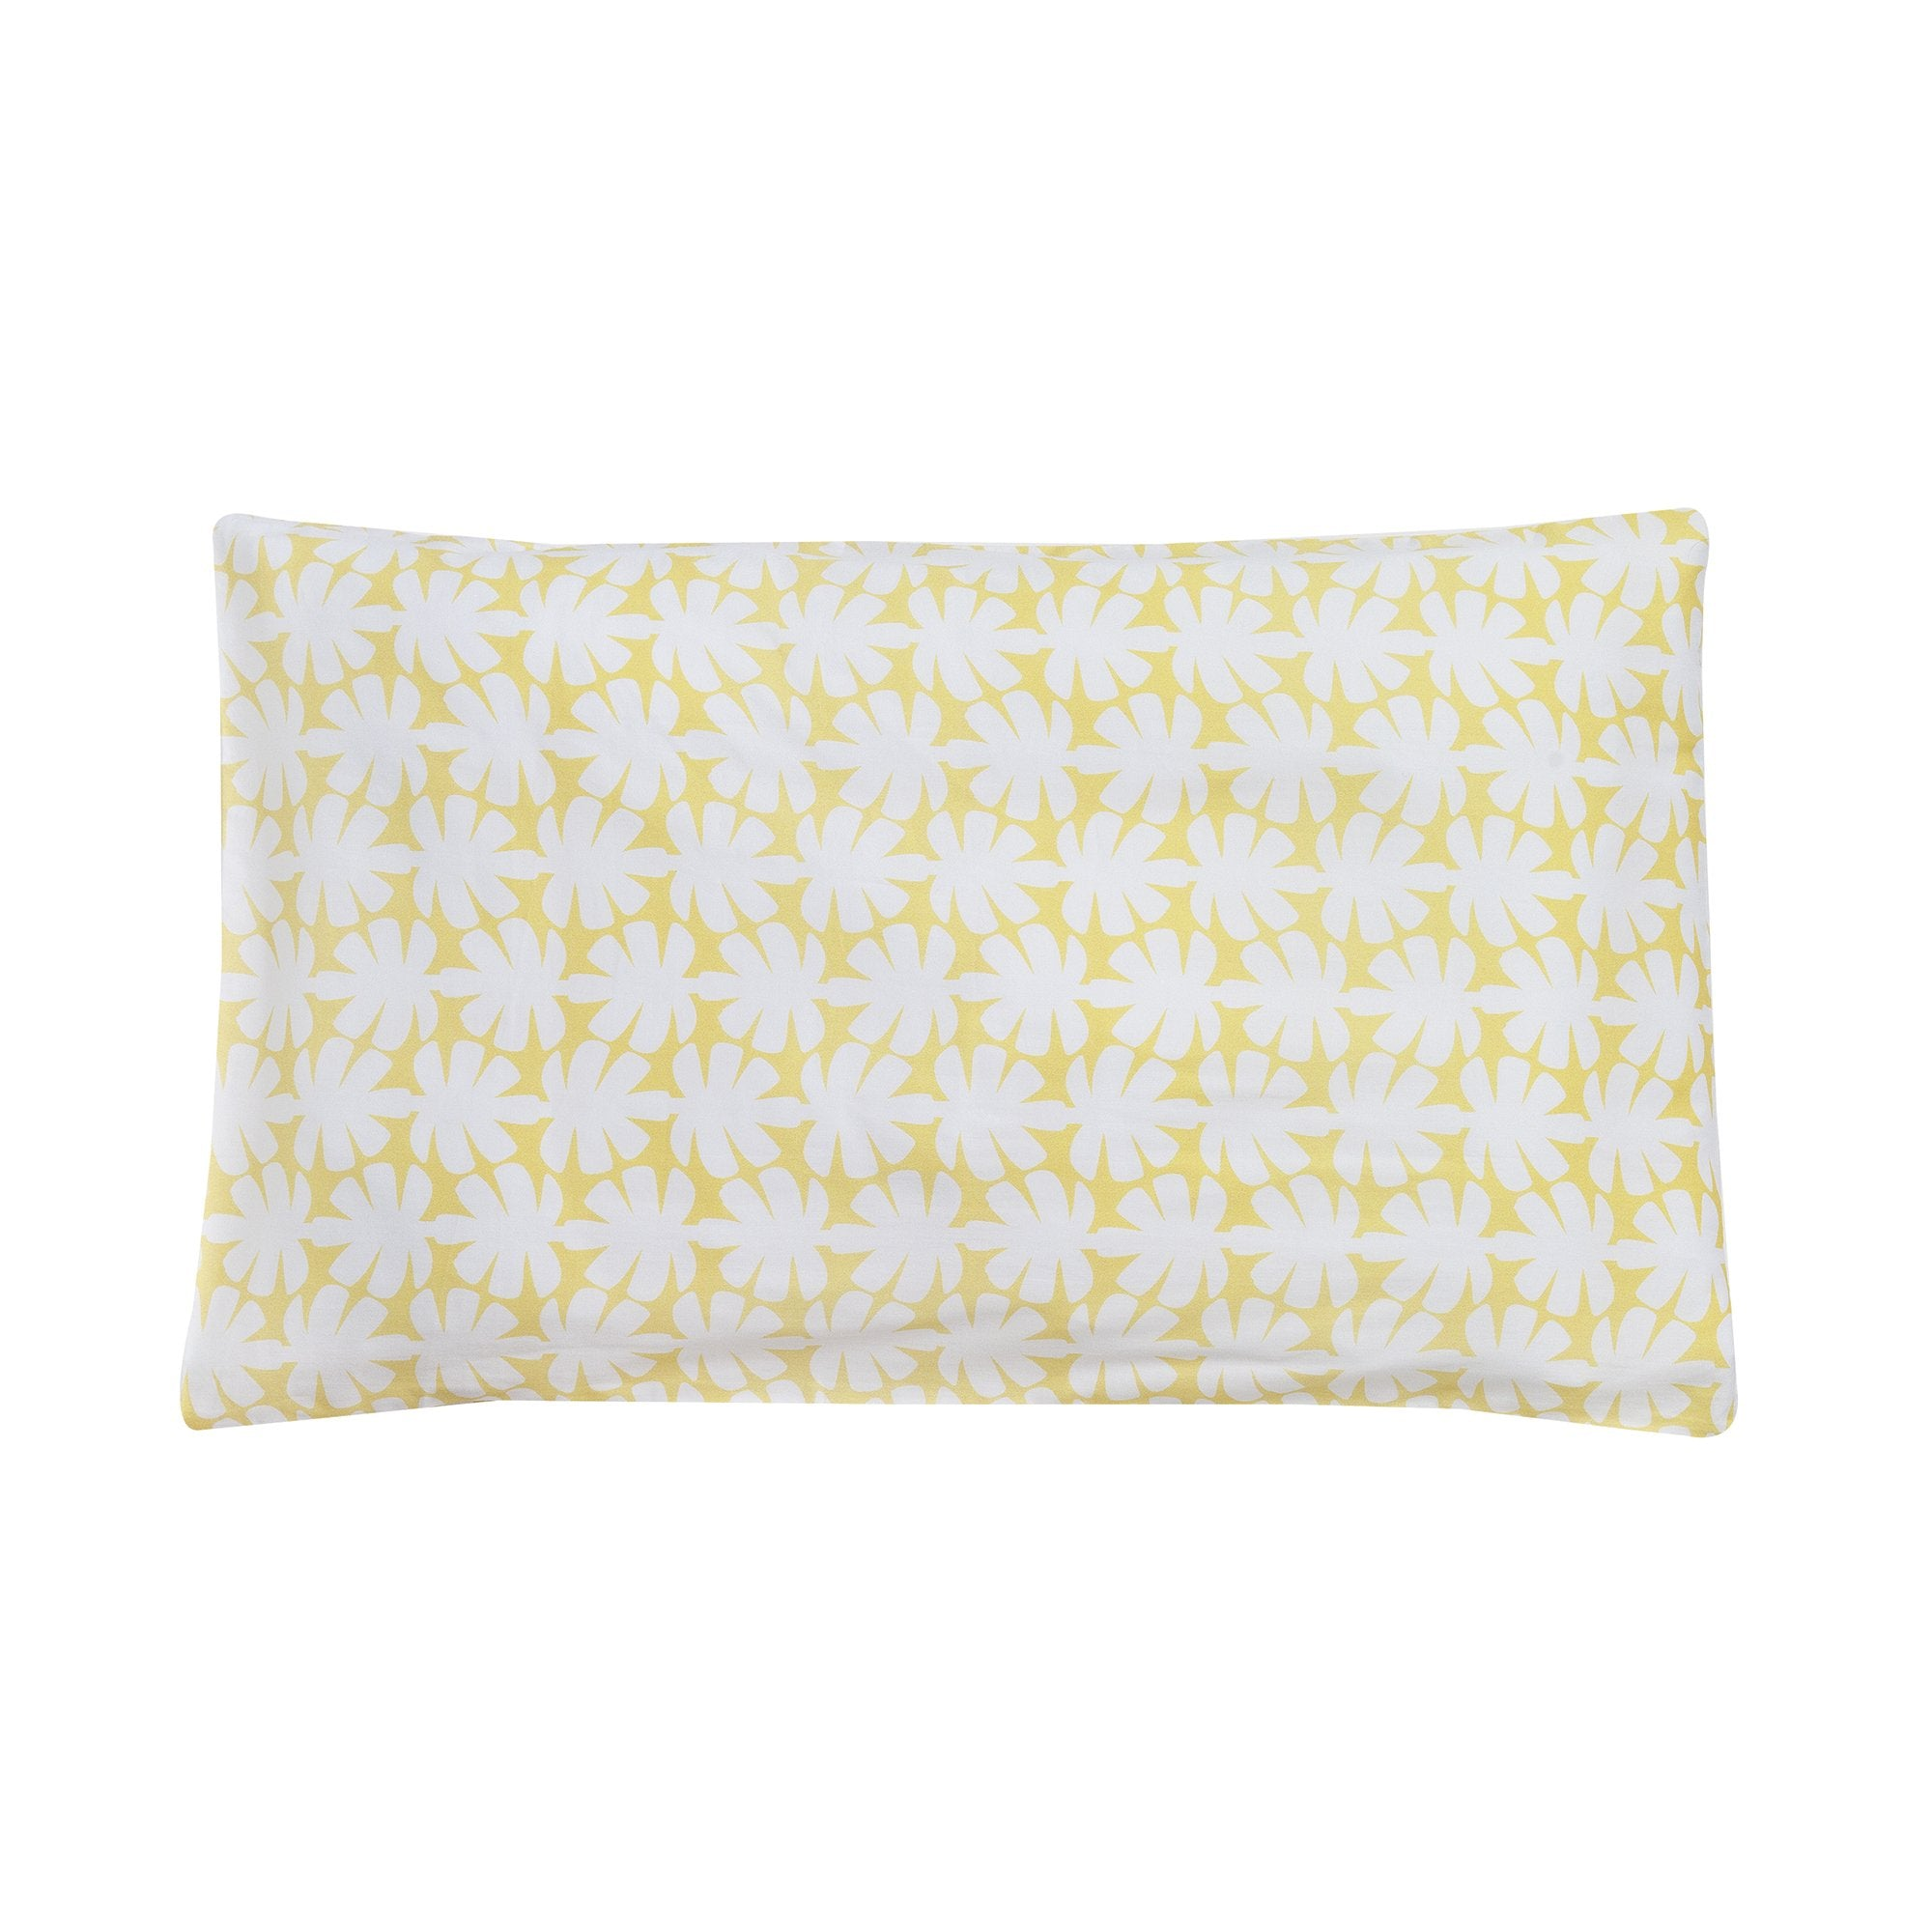 Kikau's Lemon Yellow Coconut Palm kids pillowcase on white background